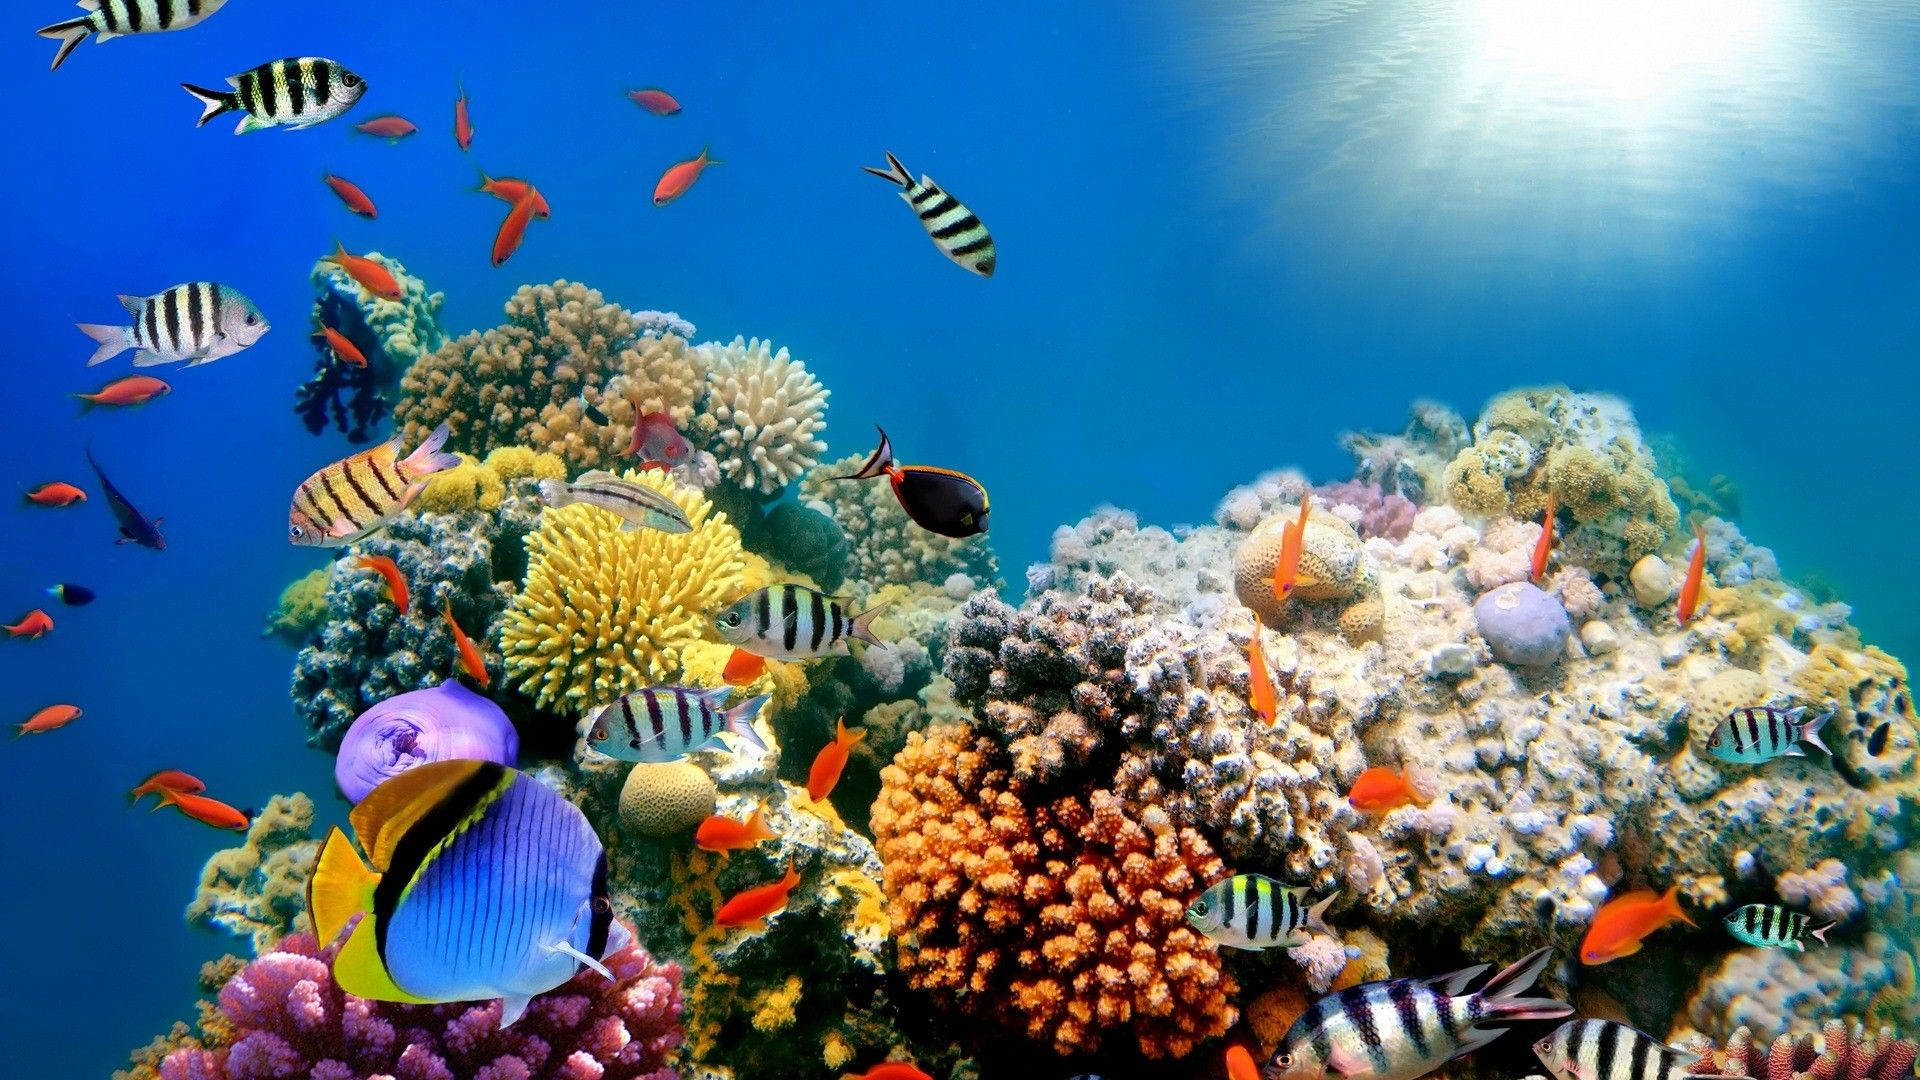 Hd wallpaper quality - Colorful Fish Sea Creature High Quality Hd Wallpapers Hd Famous 1920 1080 Sea Animals Pictures